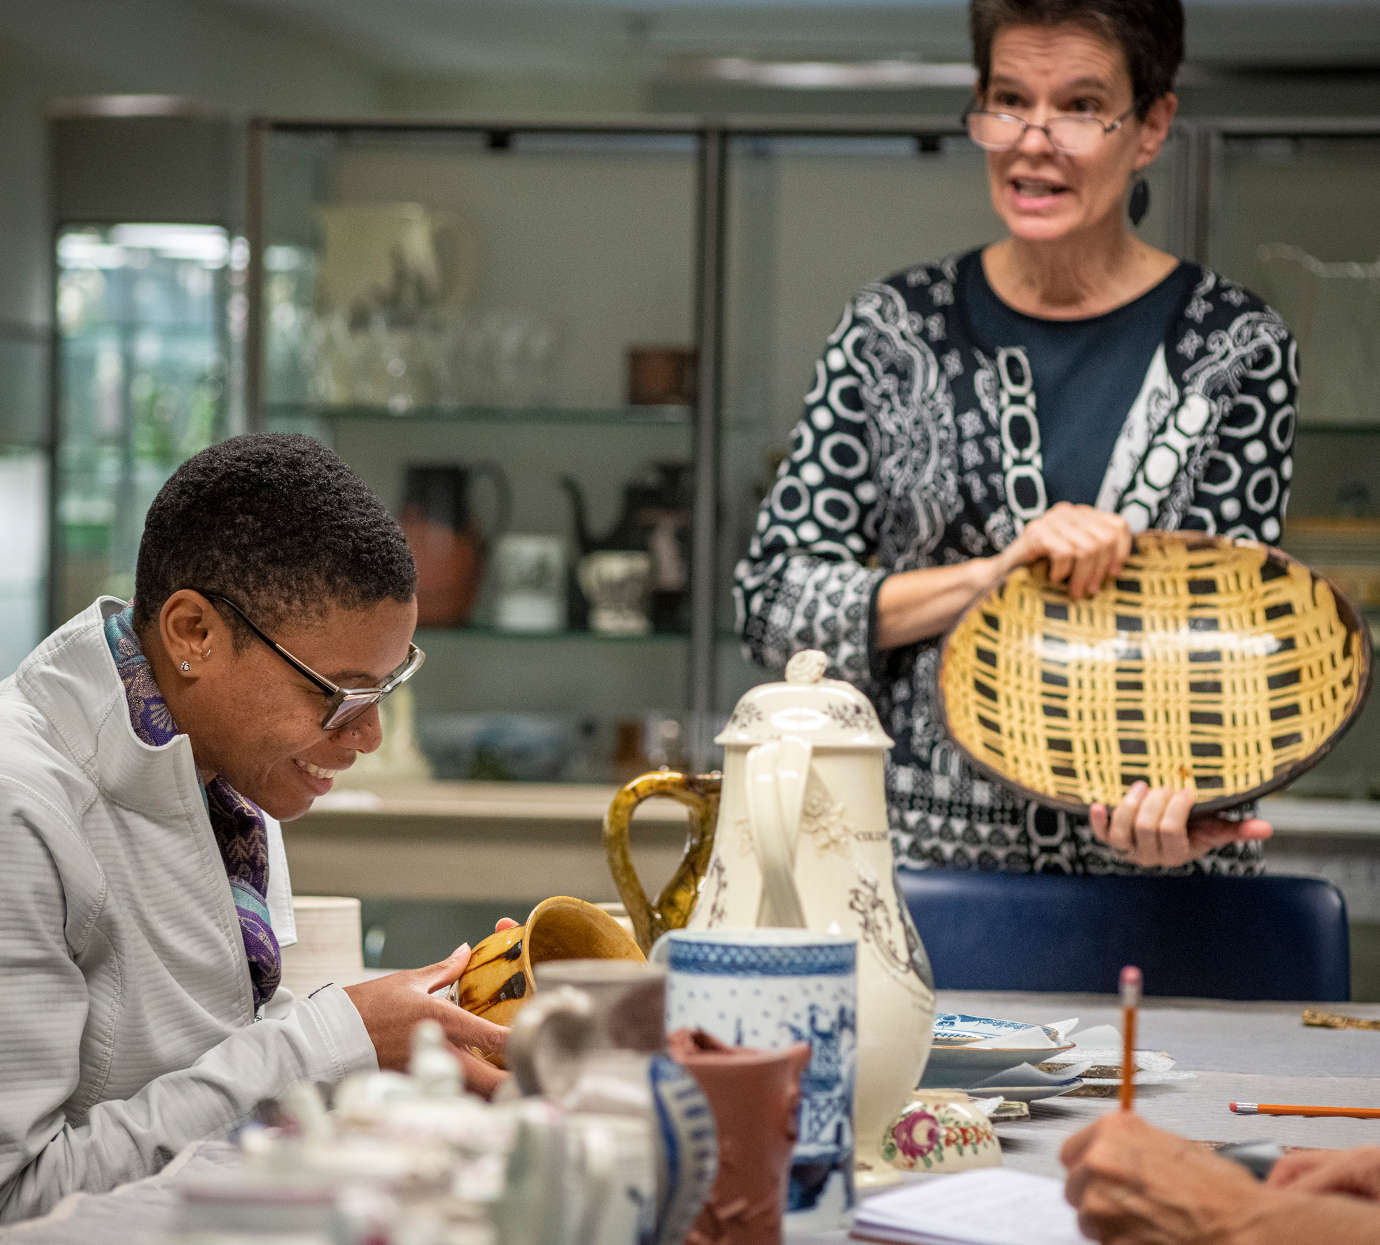 Through workshops, Winterthur builds the capacity of conservators more broadly, promoting best practices and knowledge acquisition in a way that has an impact far beyond the bounds of the estate. Image courtesy of Winterthur.